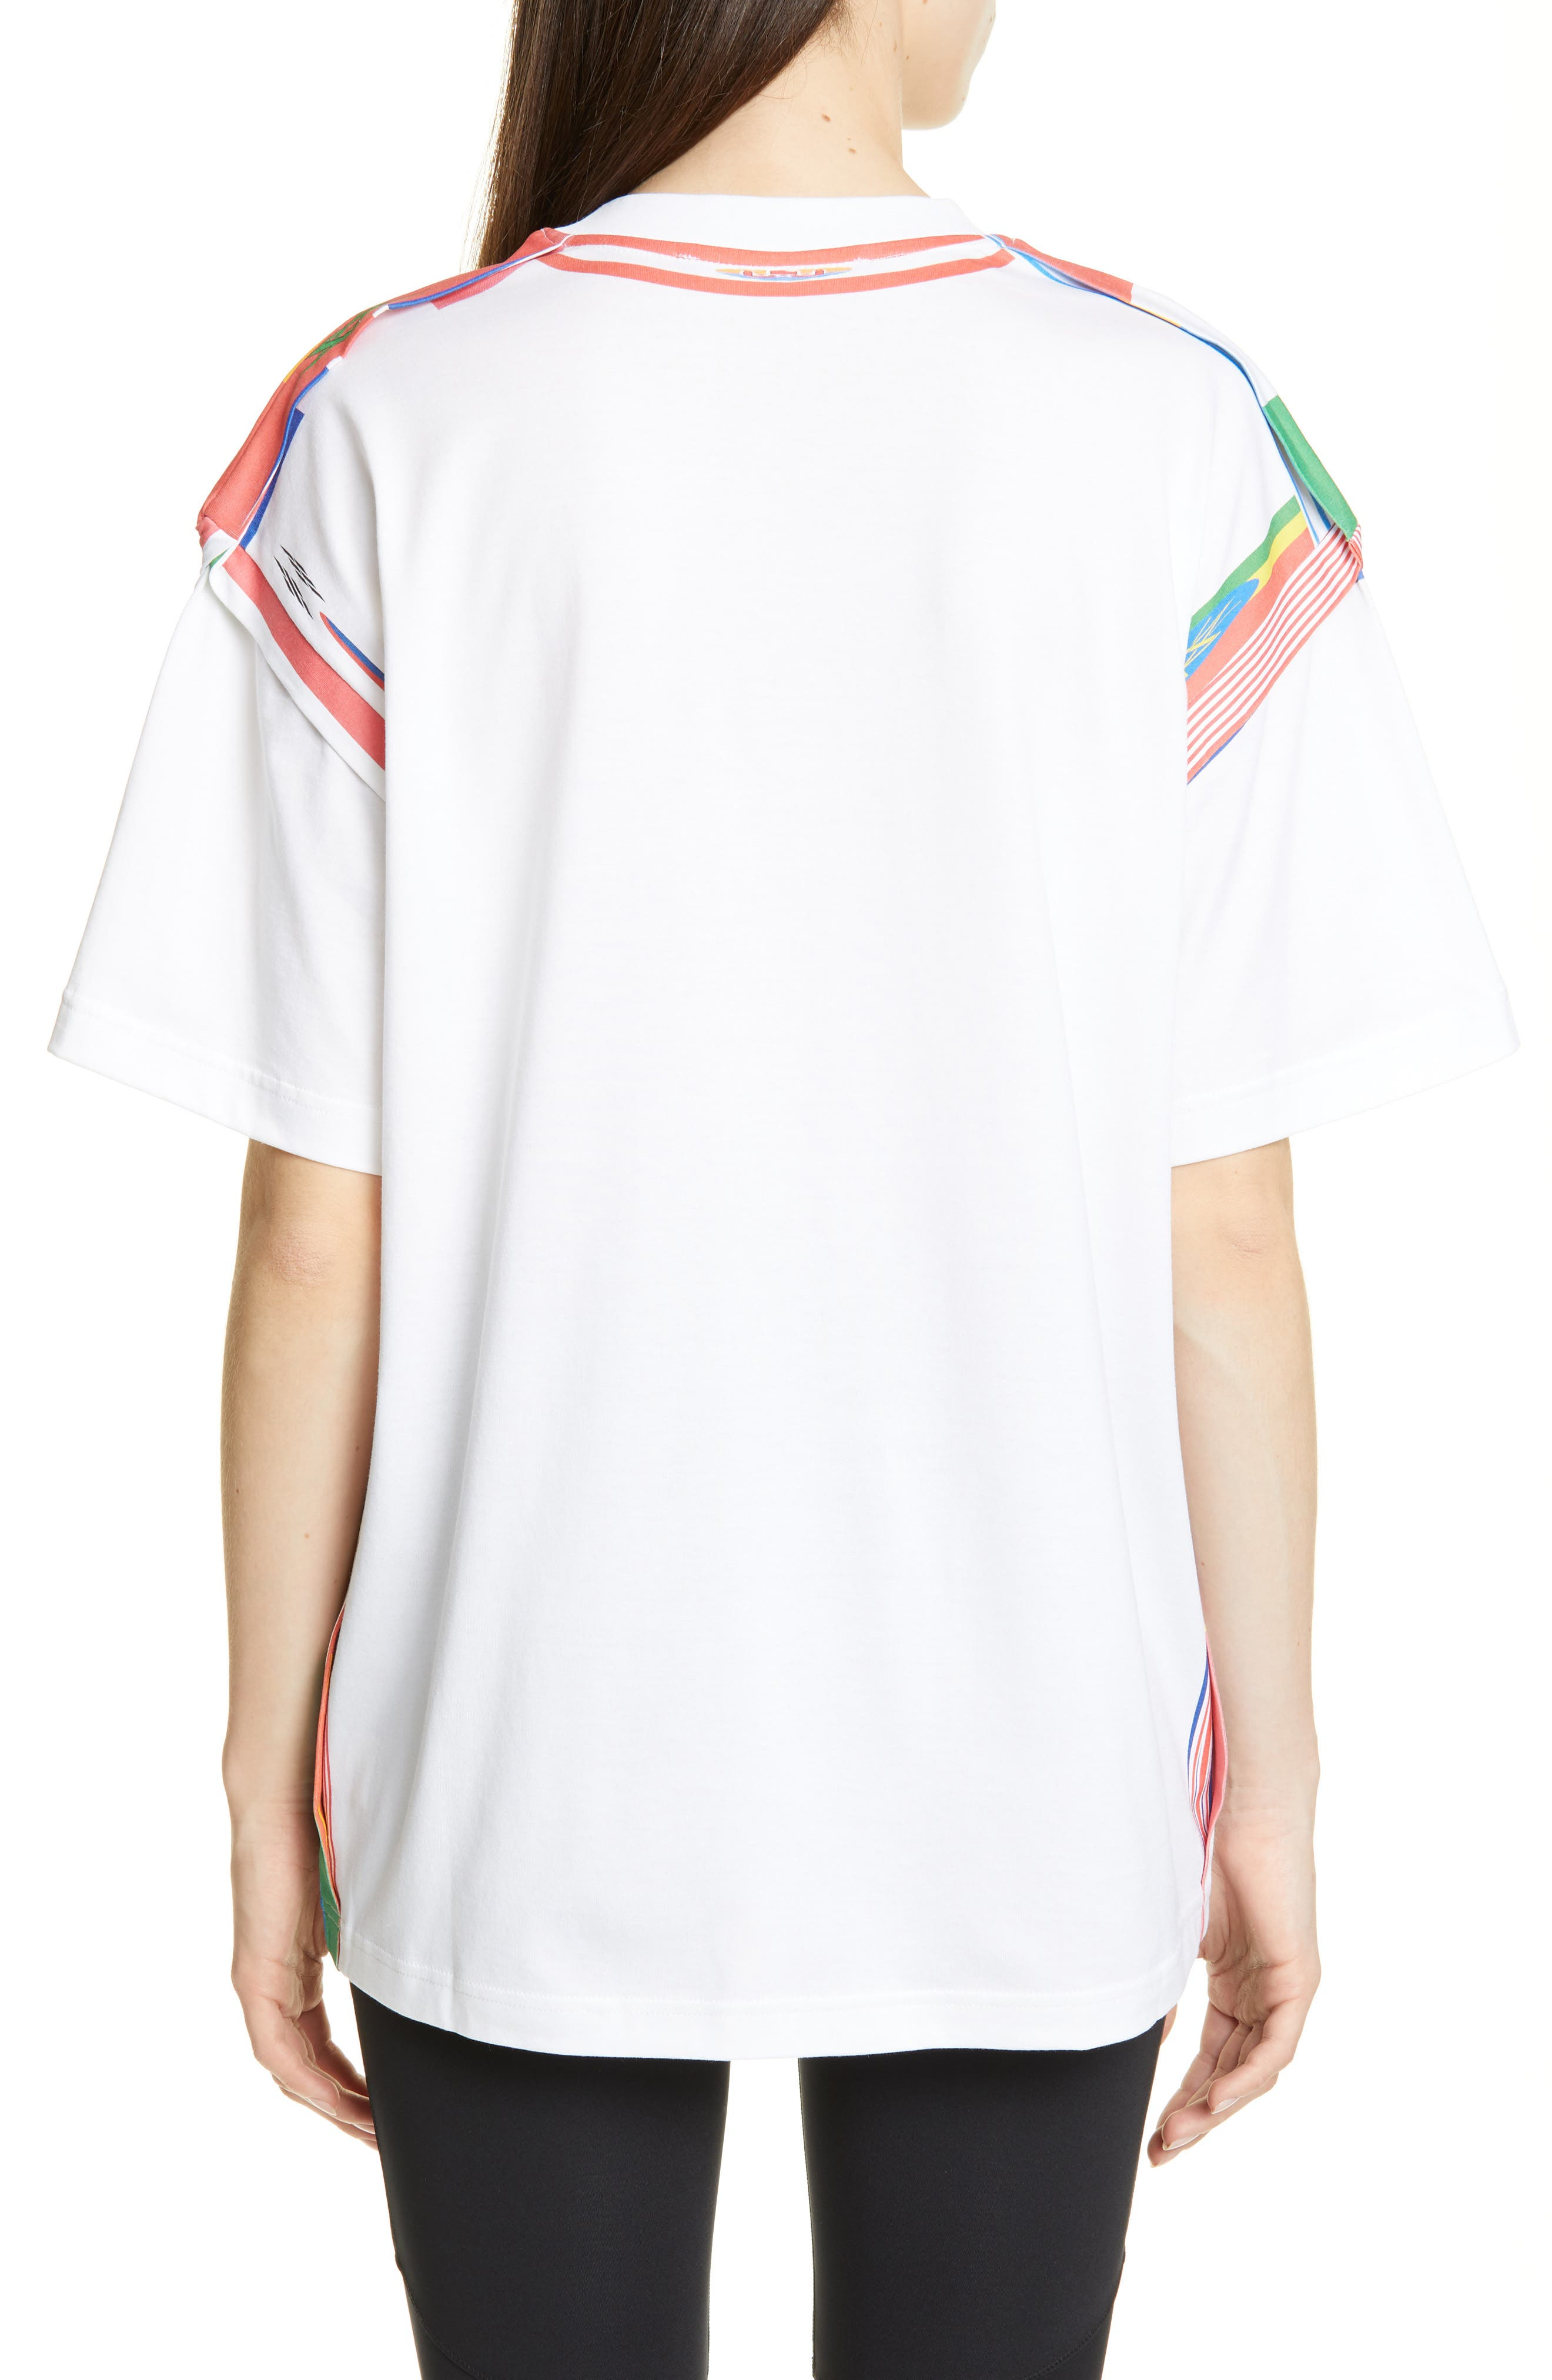 Y/PROJECT, Flag Print Tee, Alternate thumbnail 2, color, WHITE